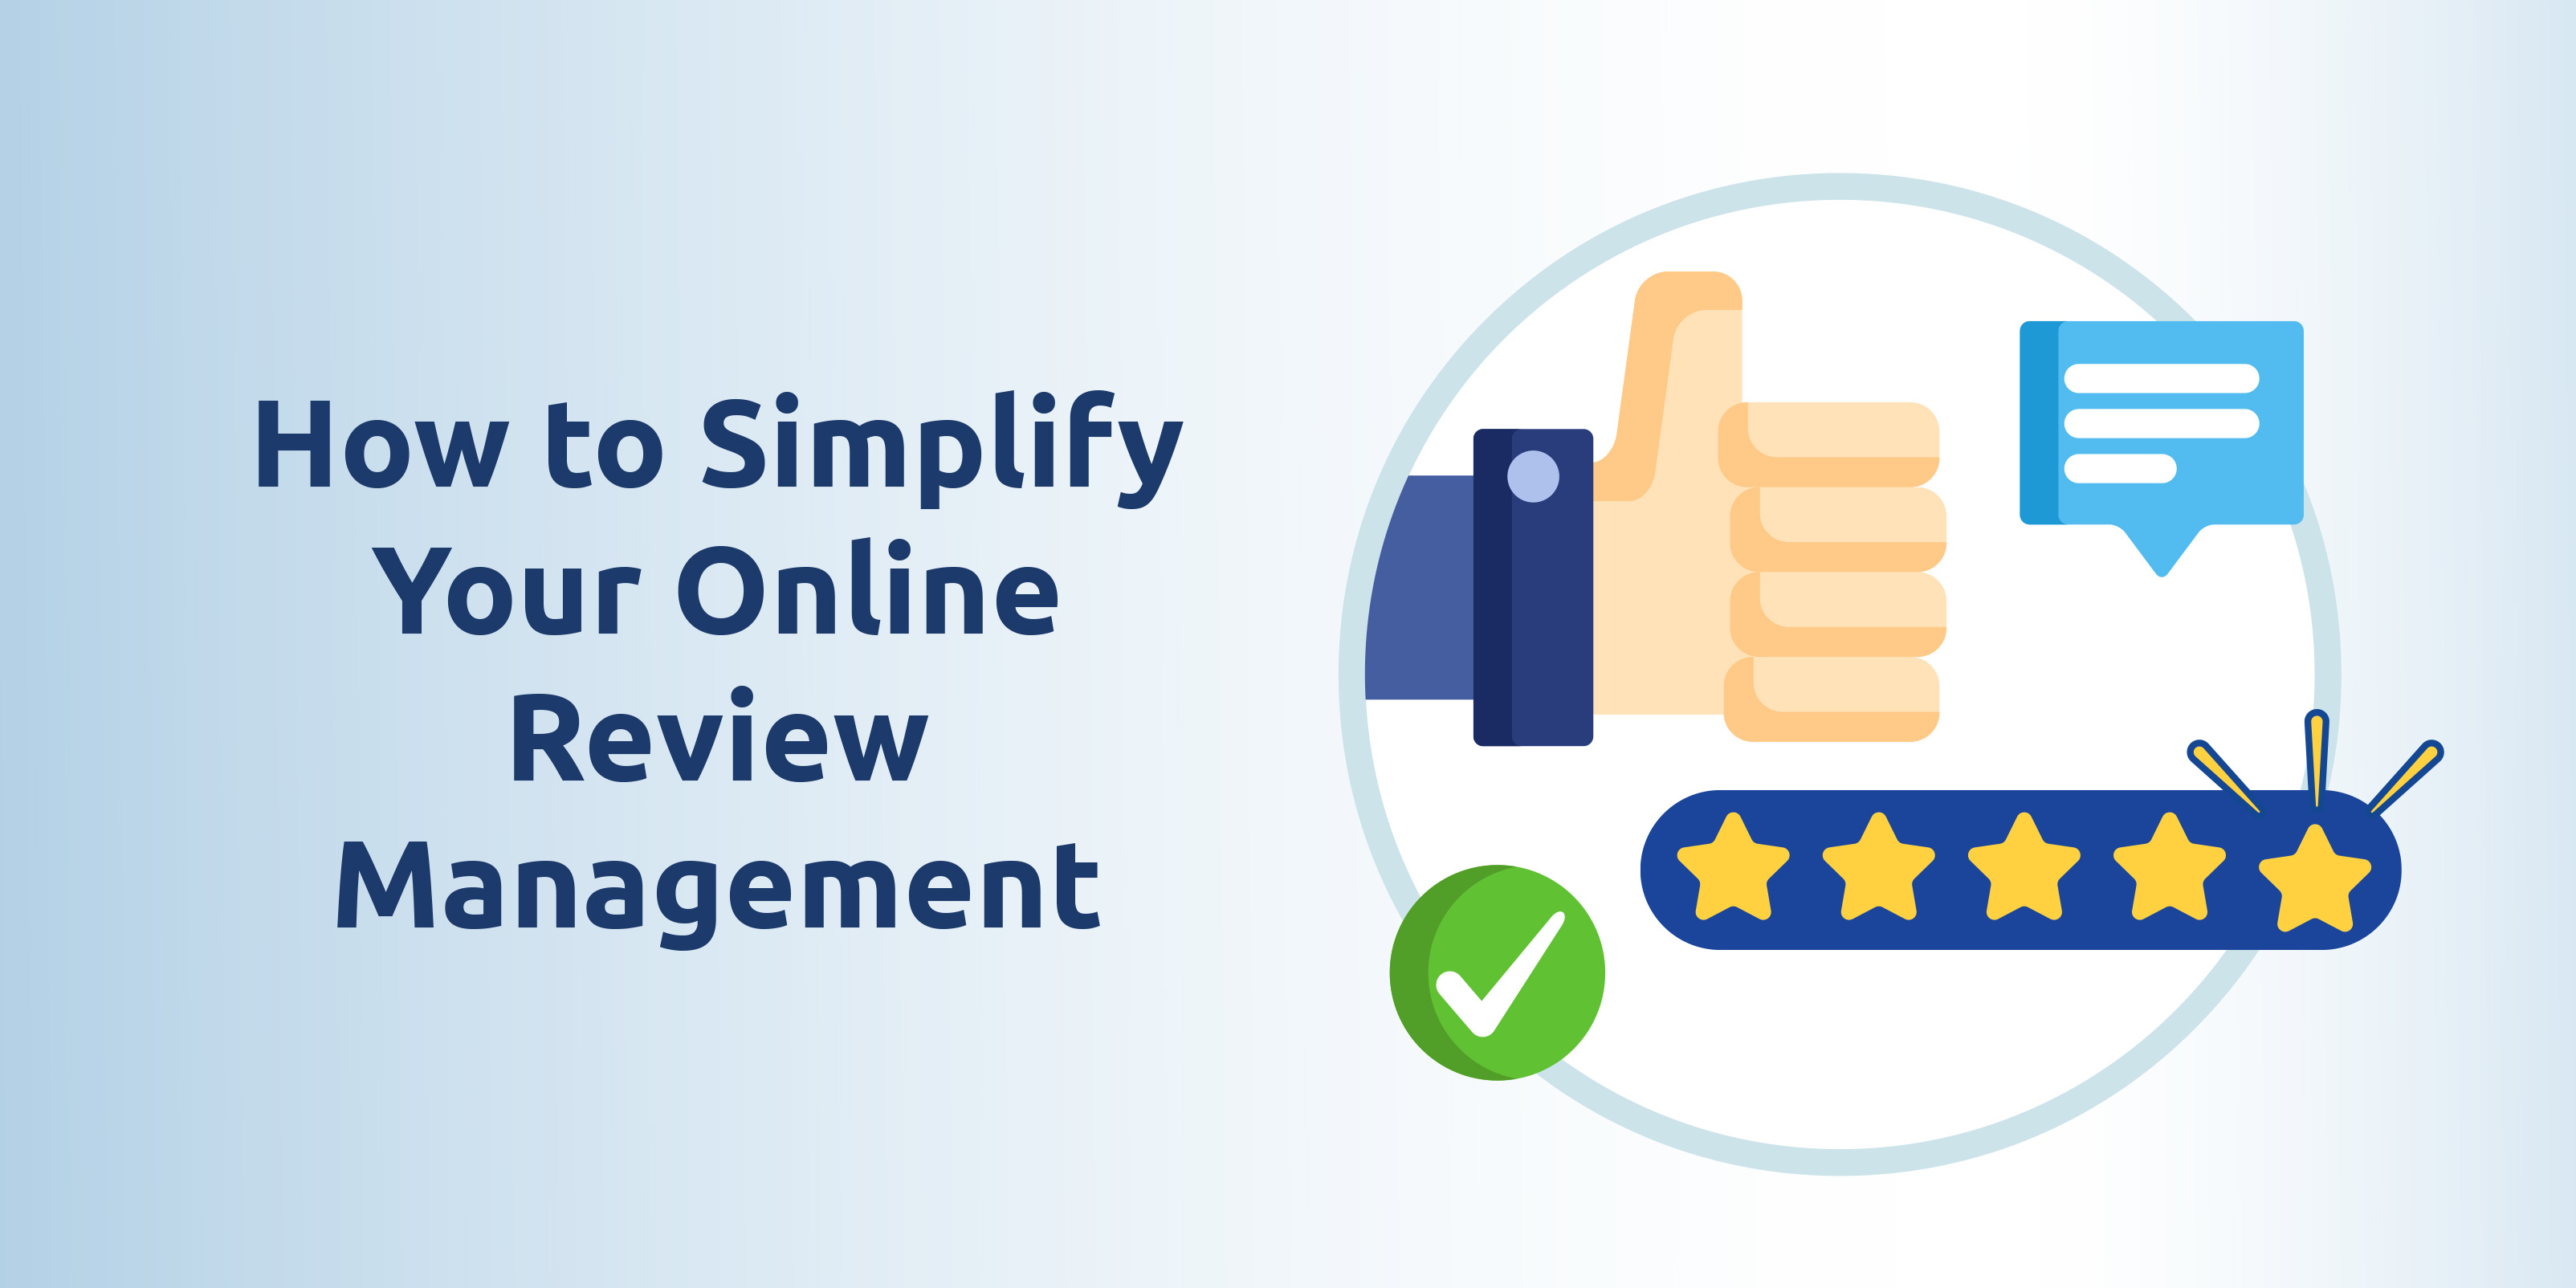 How to simplify your online review management